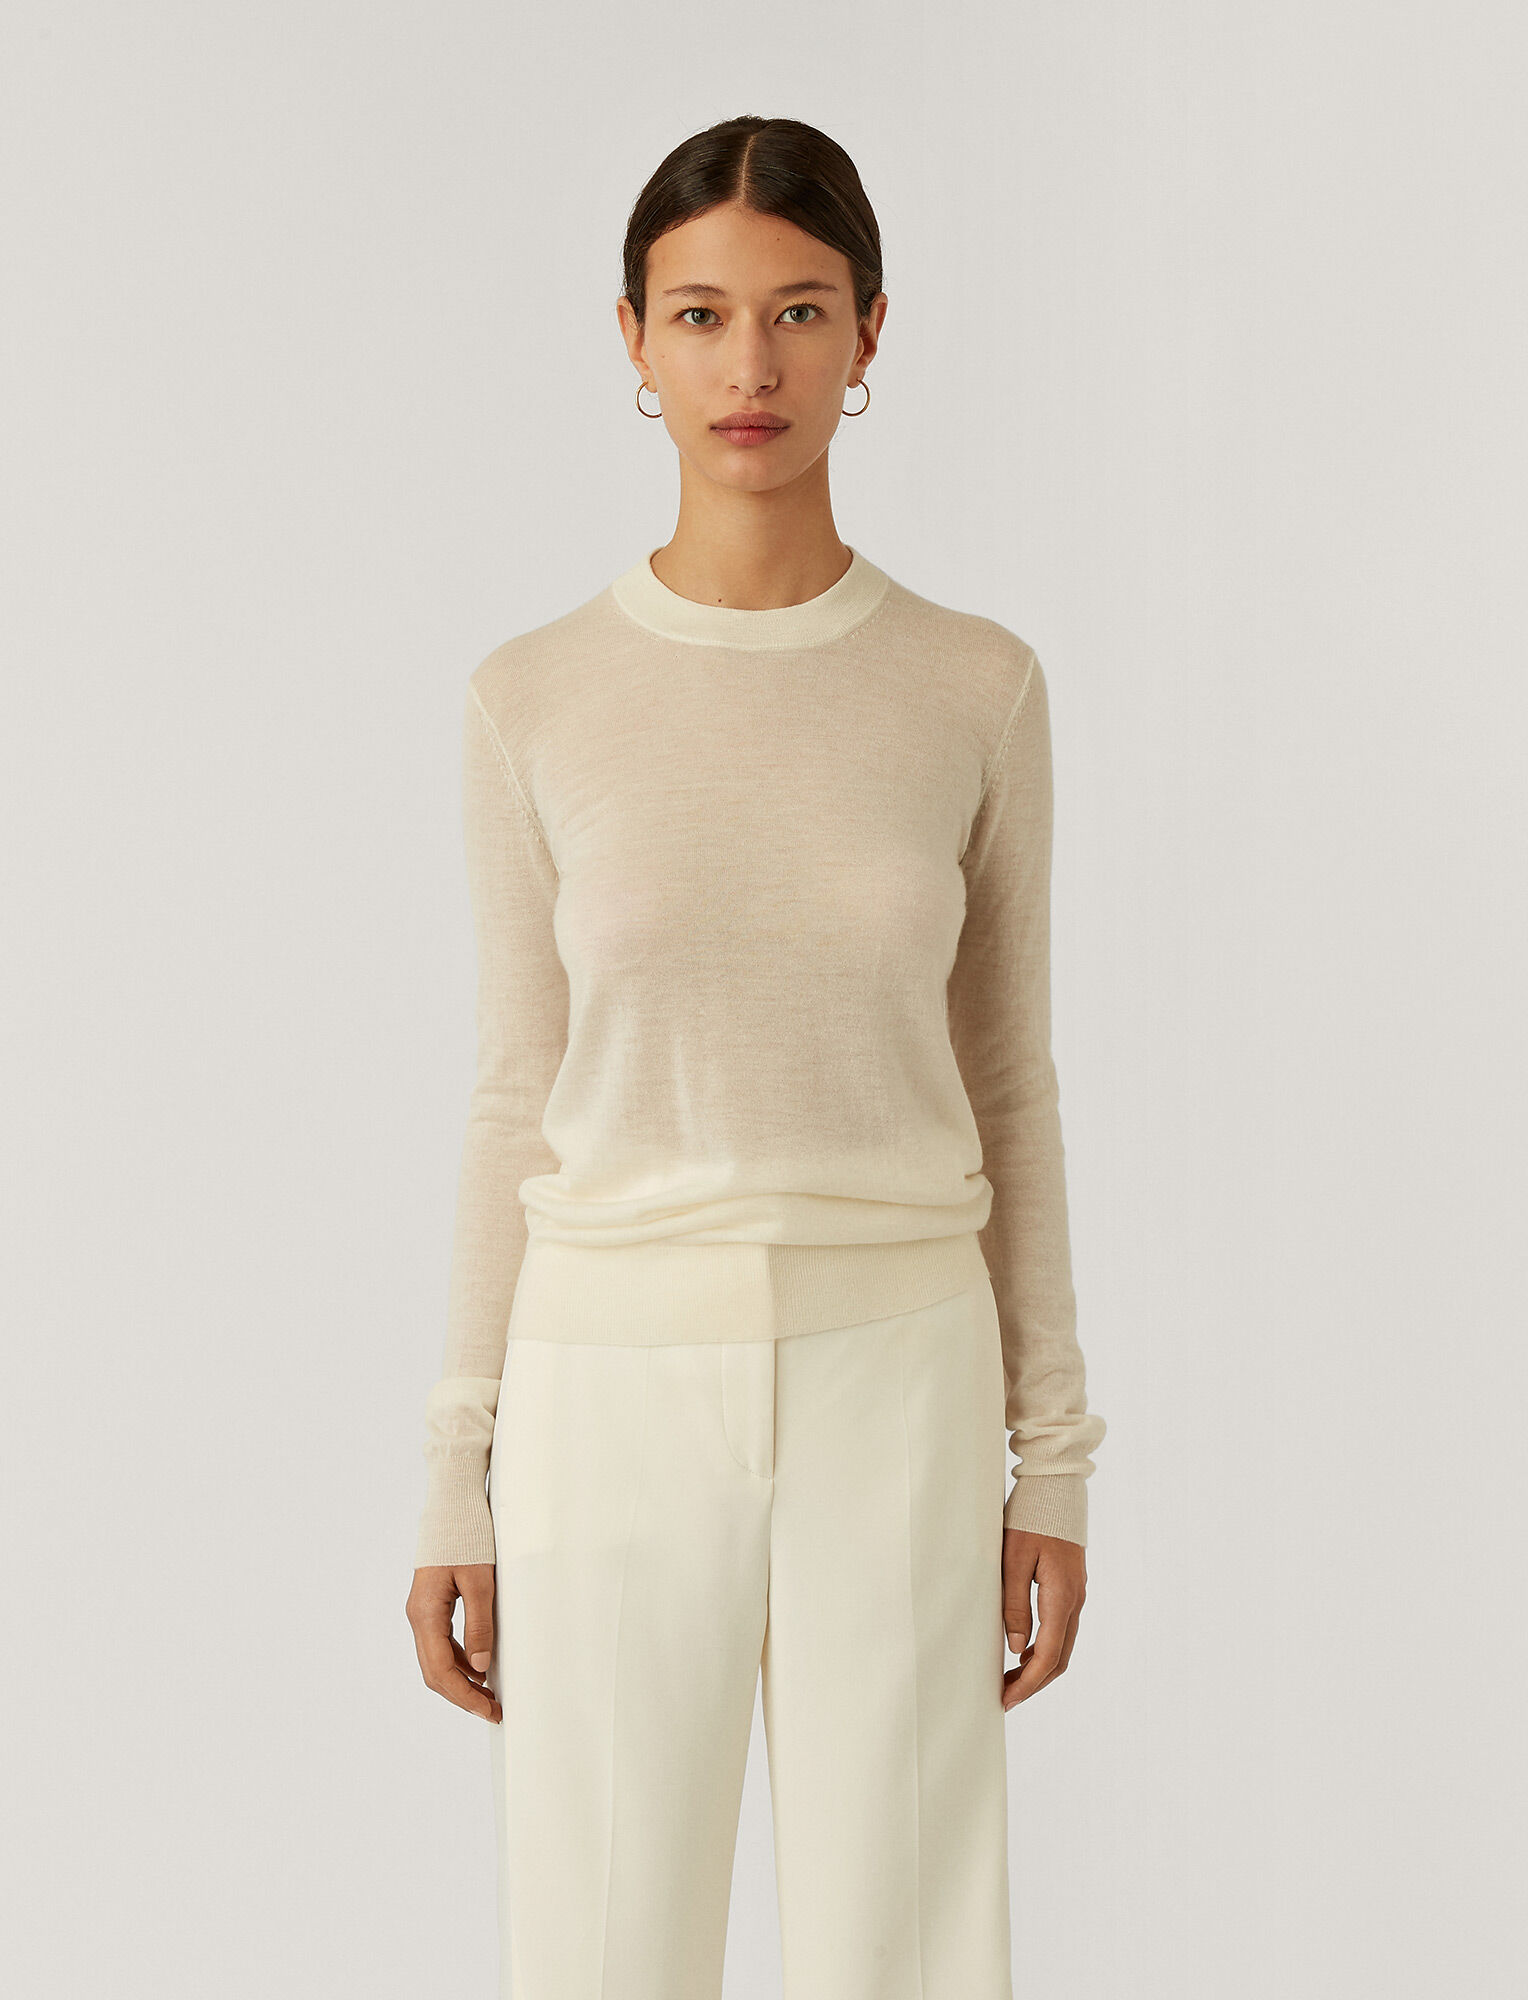 Joseph, Cashair Round Neck Jumper, in IVORY